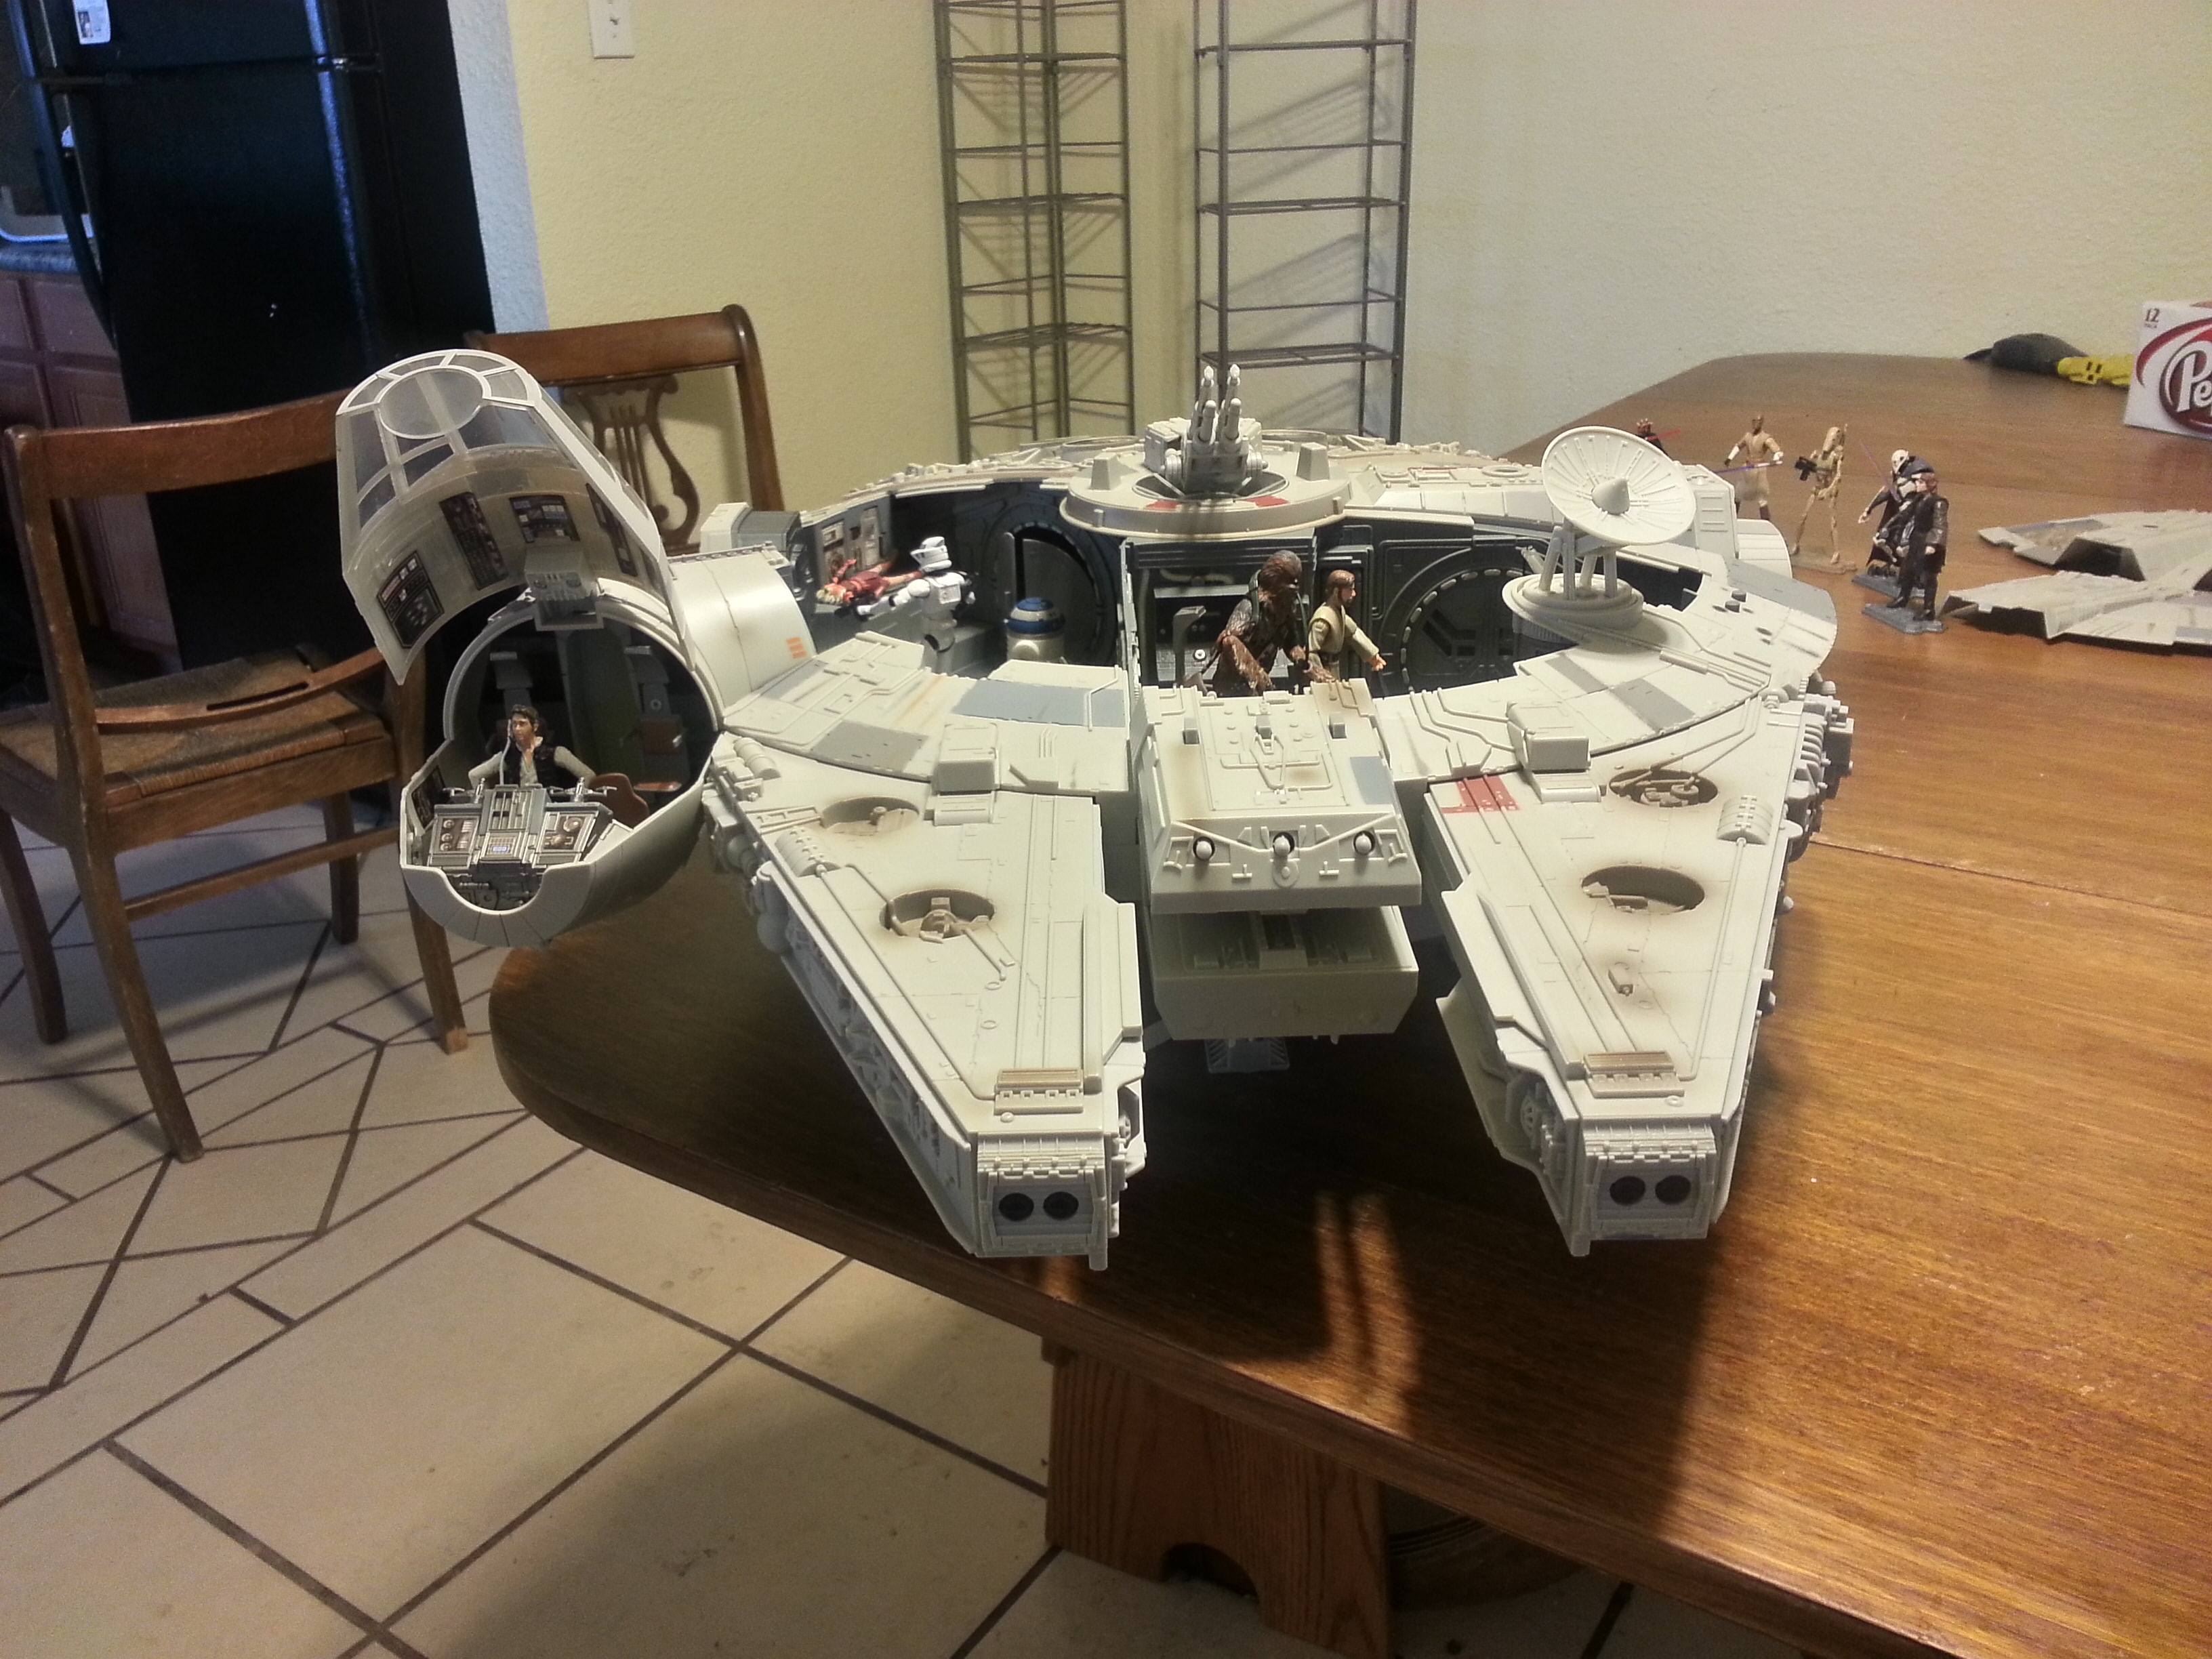 Full Frontal View of the Open Millenium Falcon Model